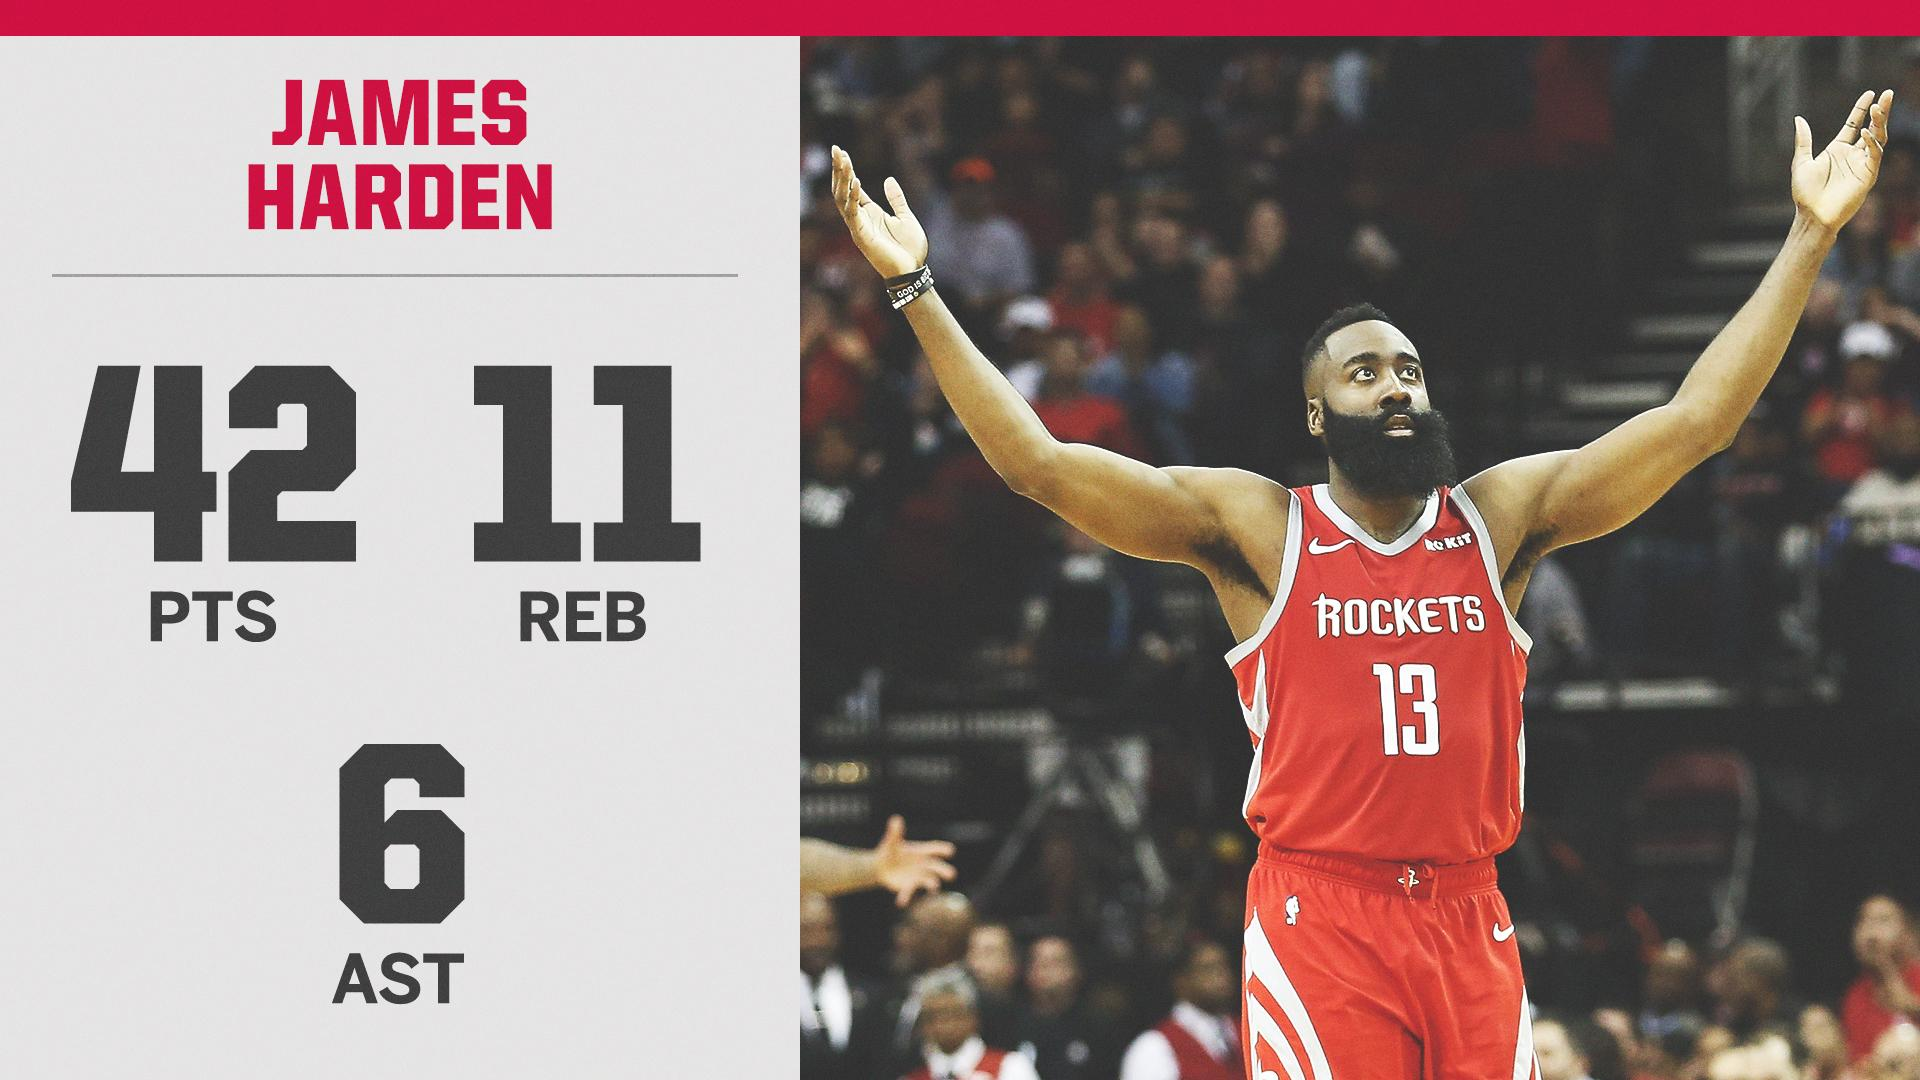 James Harden had his 14th-straight 30-point game, but the Rockets couldn't come back to beat the Bucks https://t.co/ZTc7OffVPv